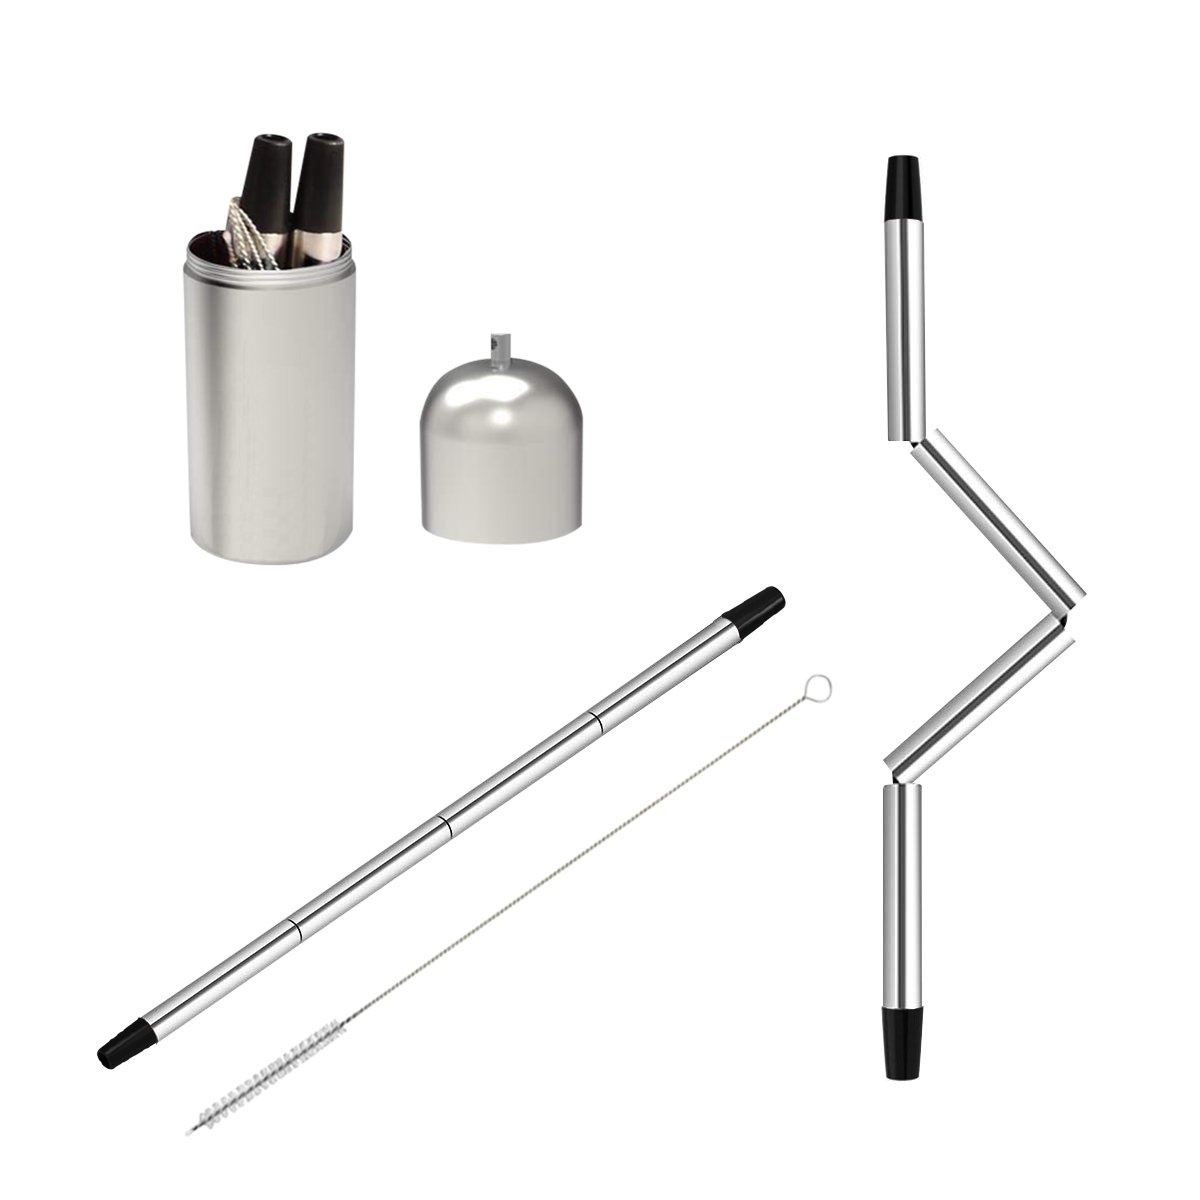 Medical-Grade 304 Stainless Collapsible Reusable Straw with Food-Grade TPE Tube for Portable Travel, Home, Outdoor Household, FinalStraw, Drinking Straw